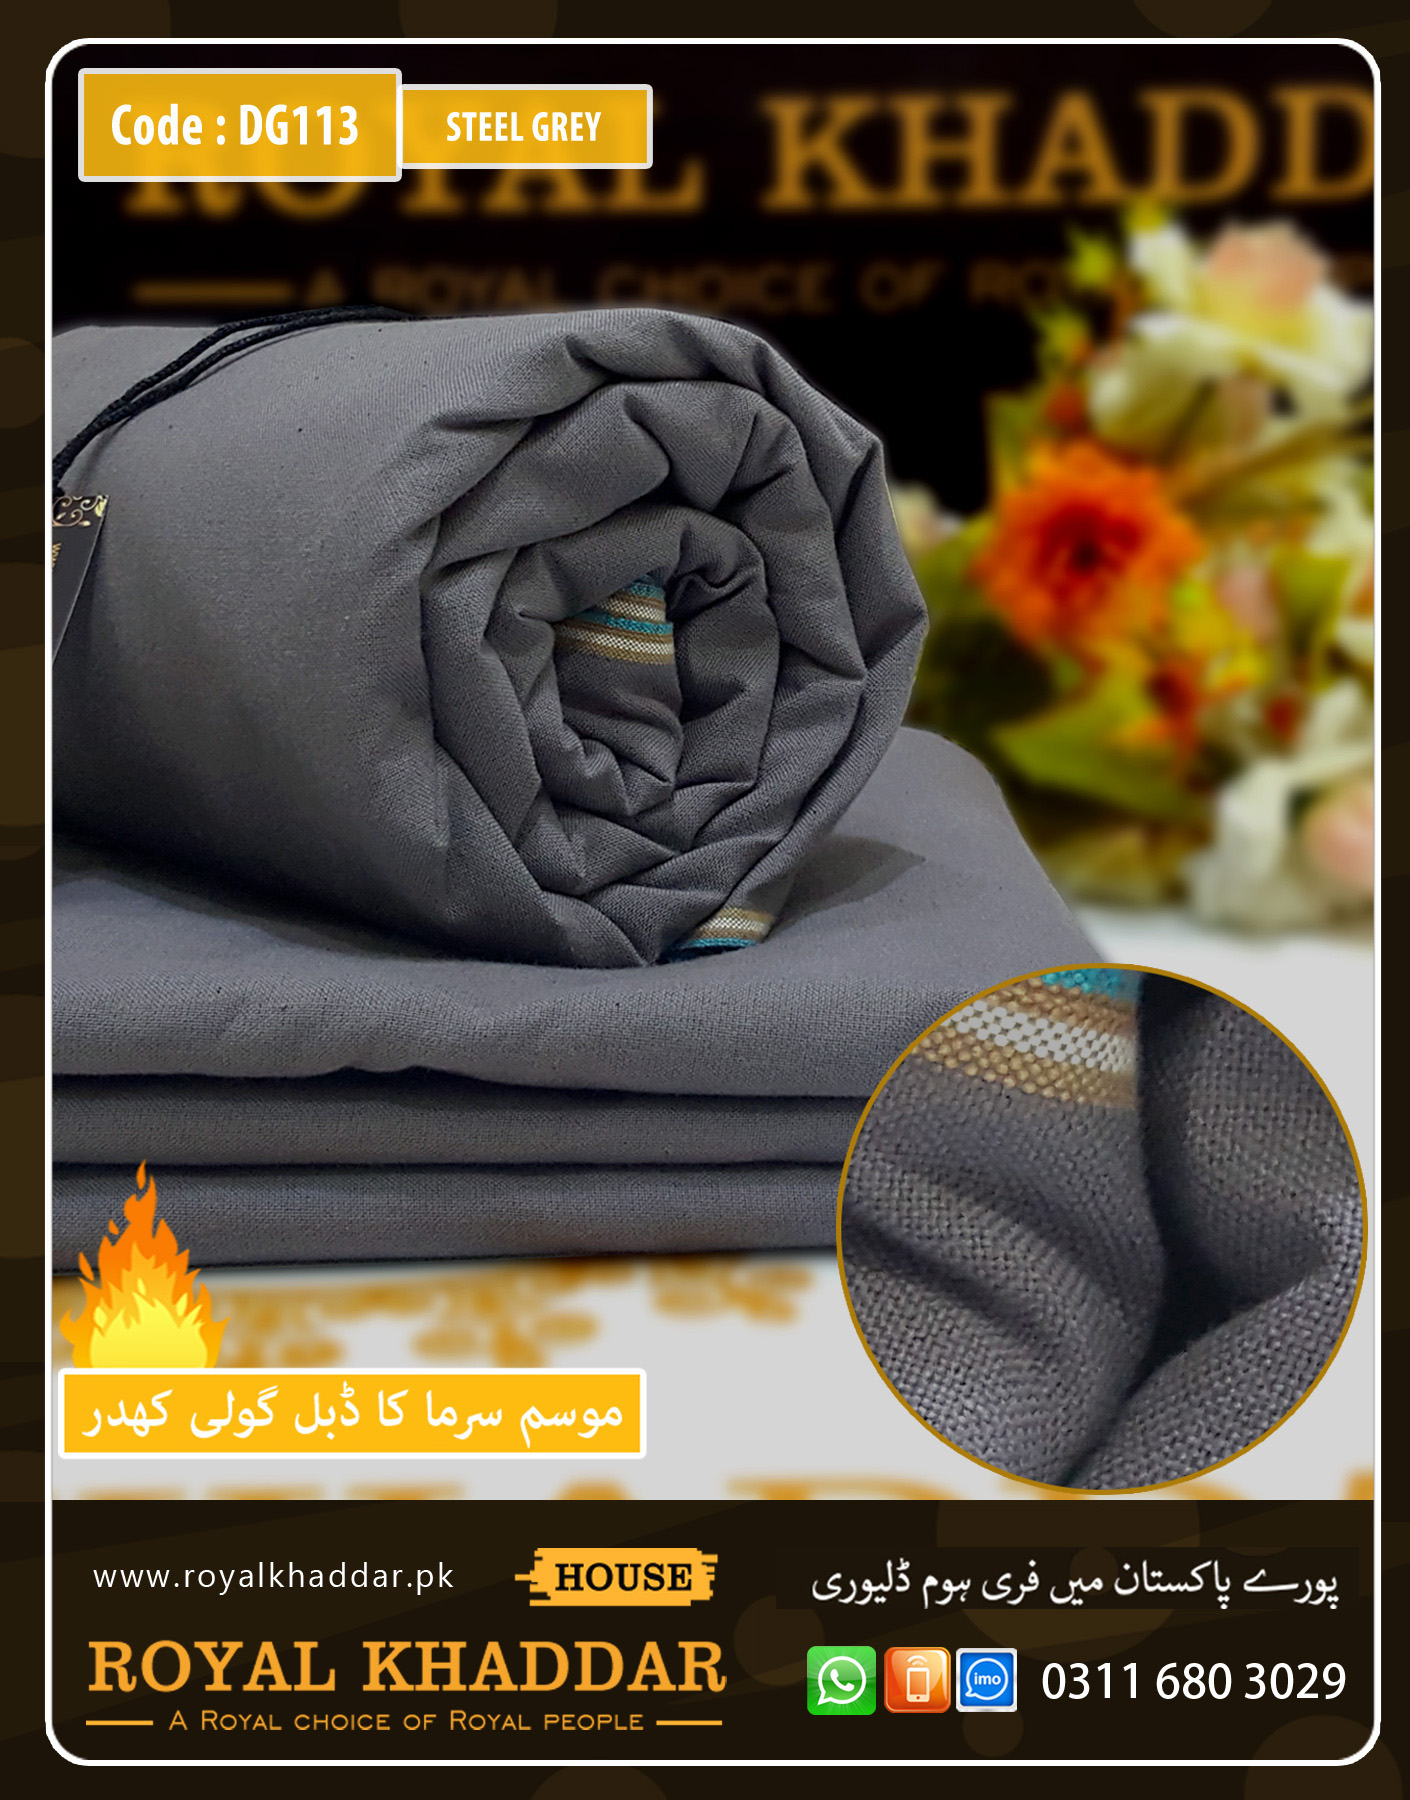 DG113 Steel Grey Double Goli Winter Khaddar